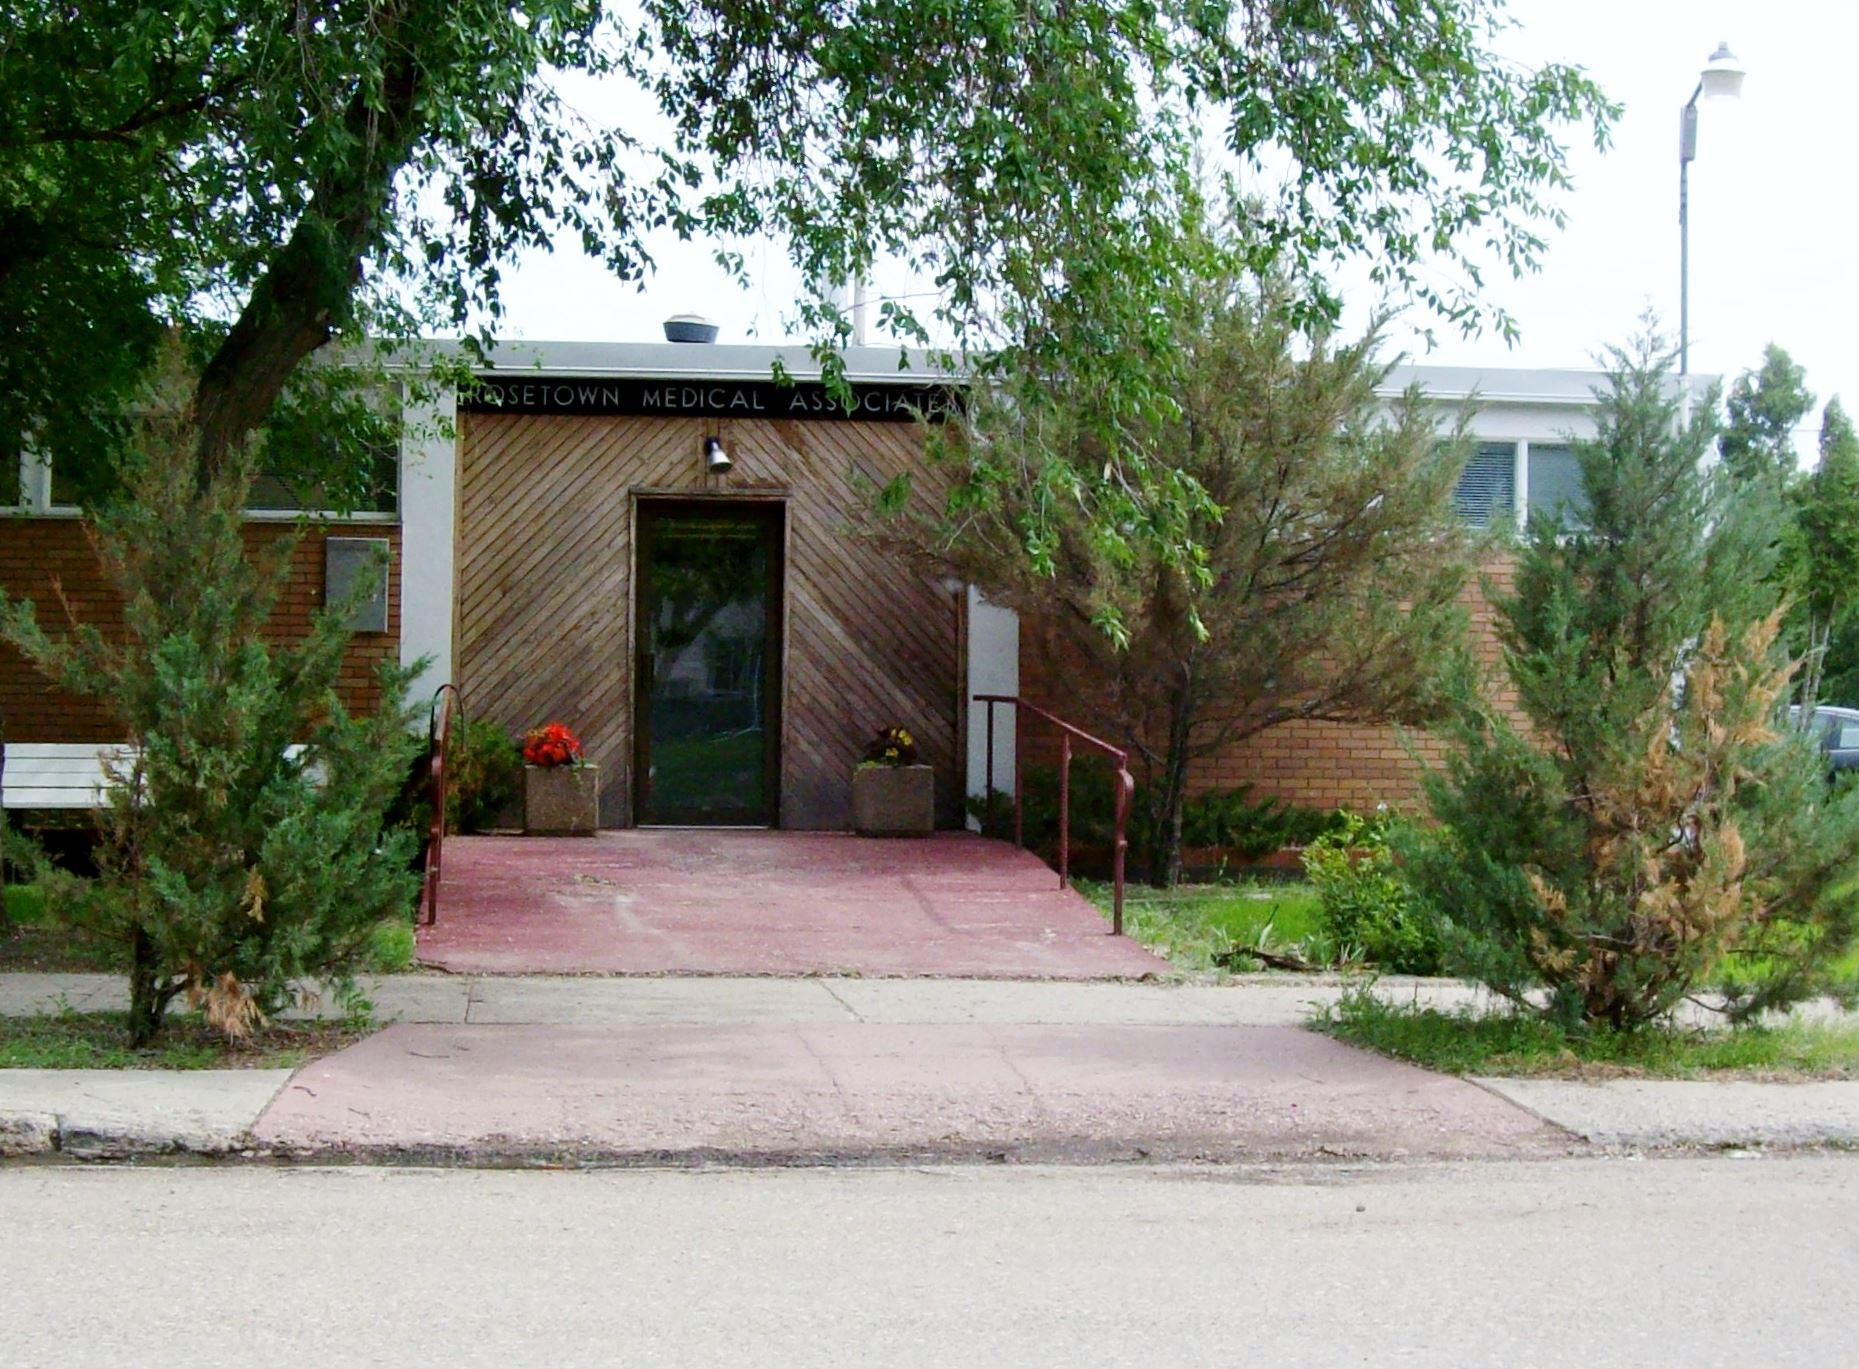 Rosetown Medical Group entrance